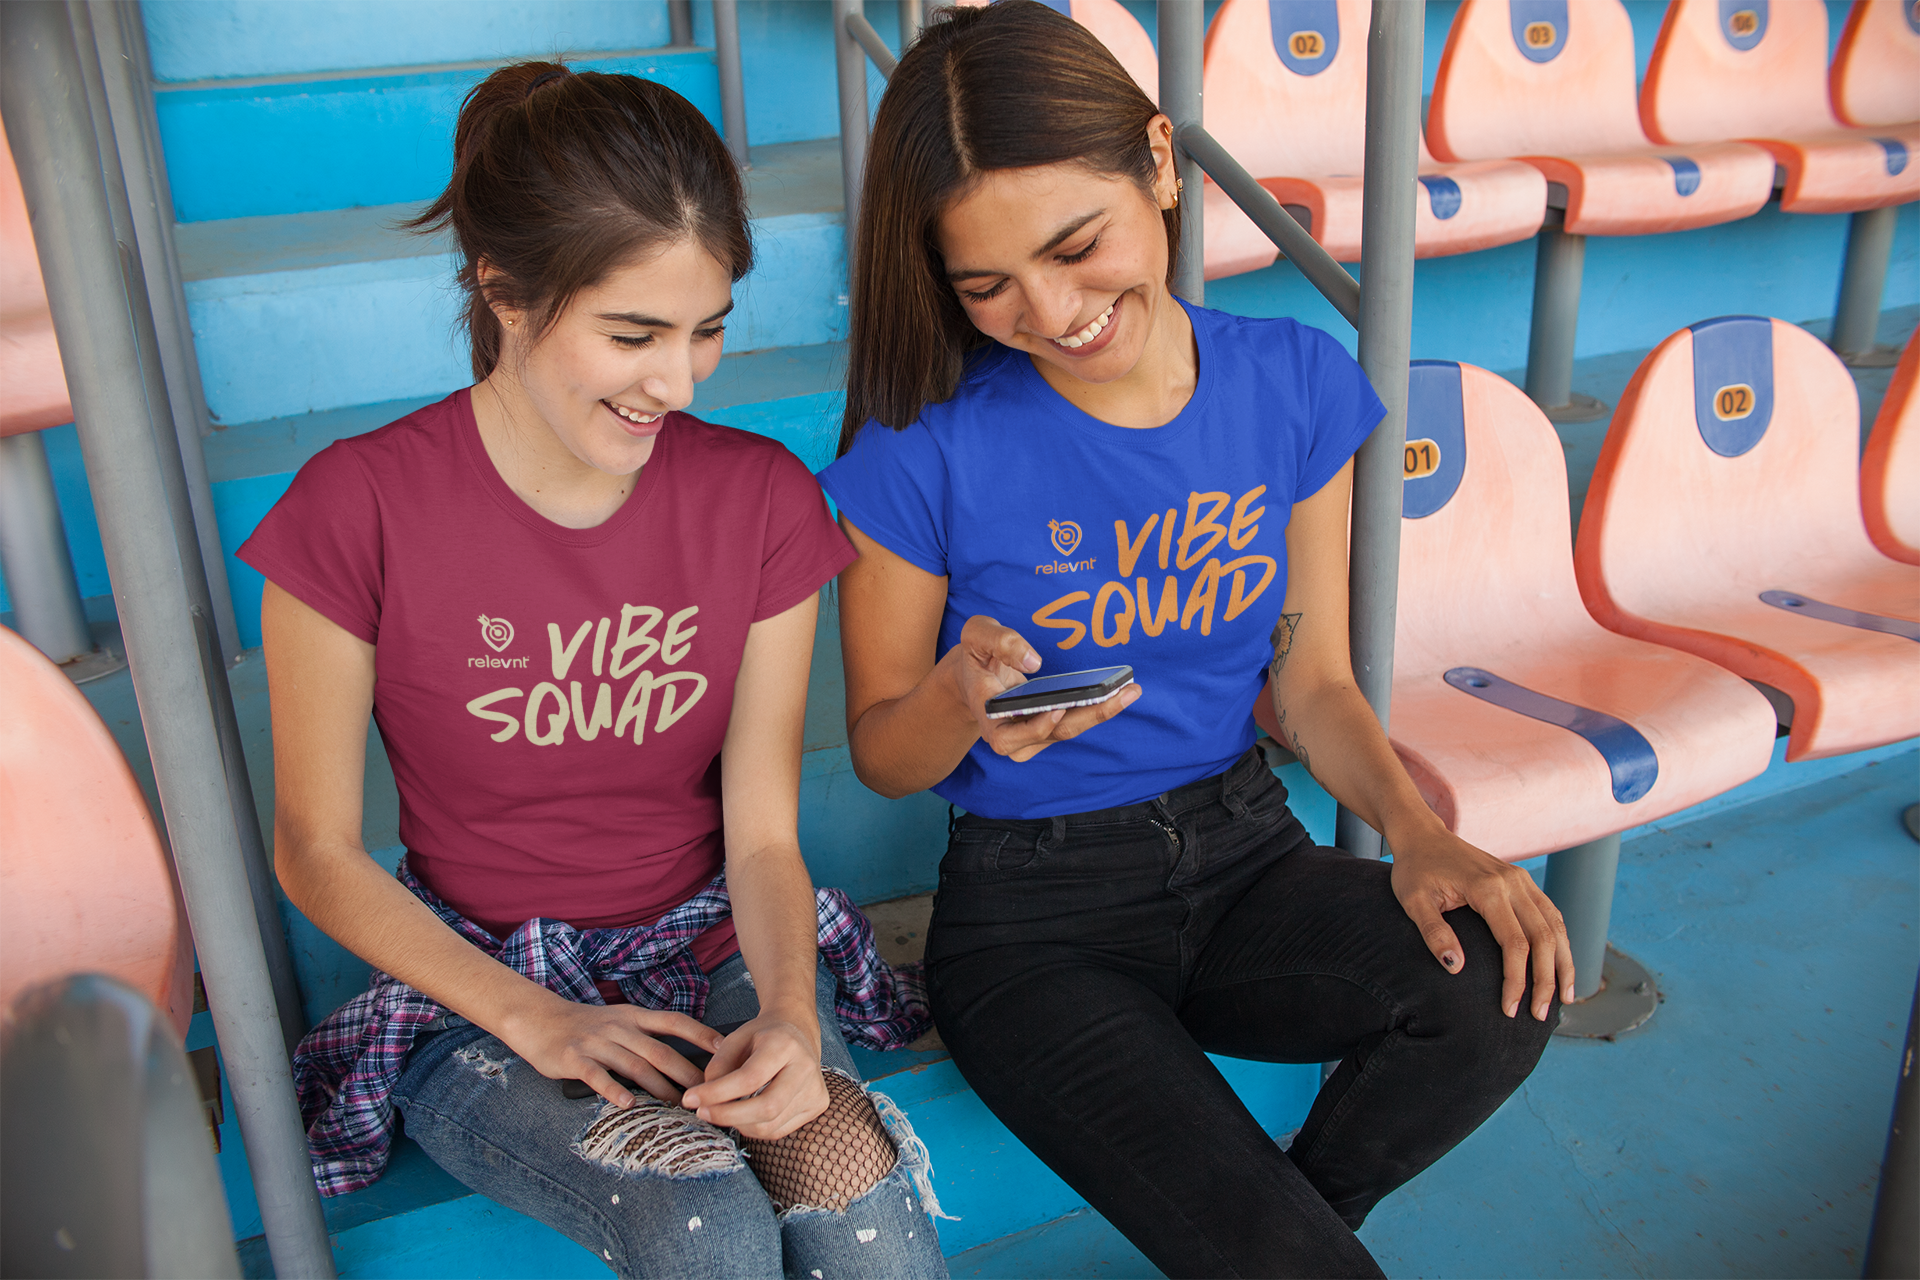 tee-mockup-featuring-two-women-at-a-stadium-25220 (2).png